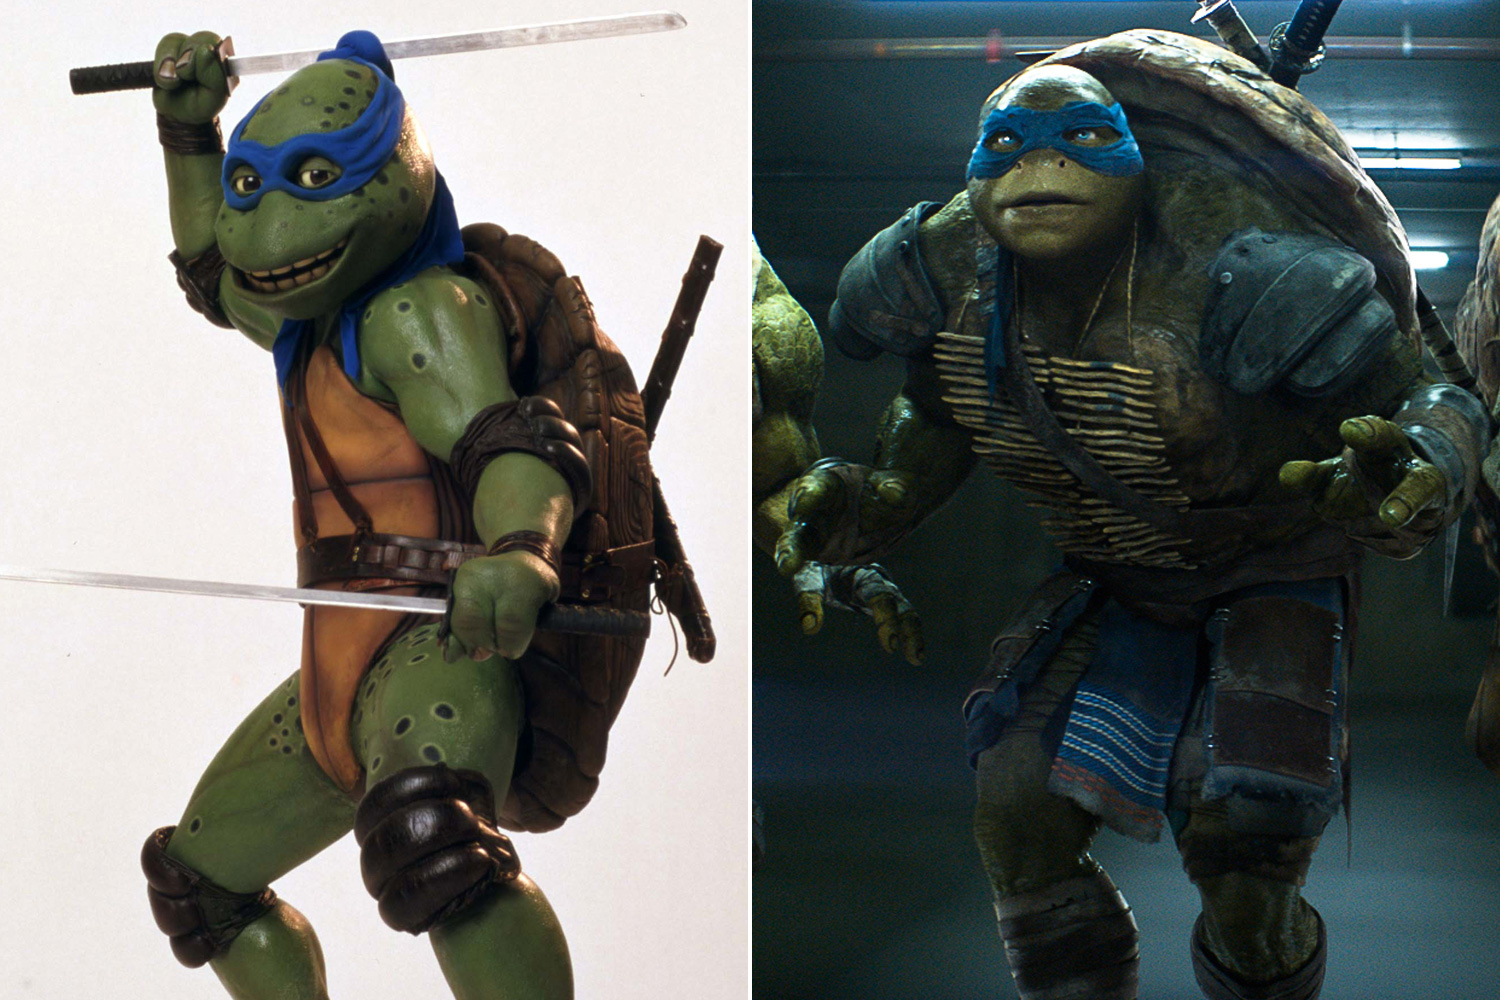 The first <i>Teenage Mutant Ninja Turtles</i> movie in 1990 featured the respective turtles played by a team of puppeteers in animatronic suits made by Jim Henson's Creature shop, while the 2014 reboot of the same name features turtles completely rendered by computer graphics.